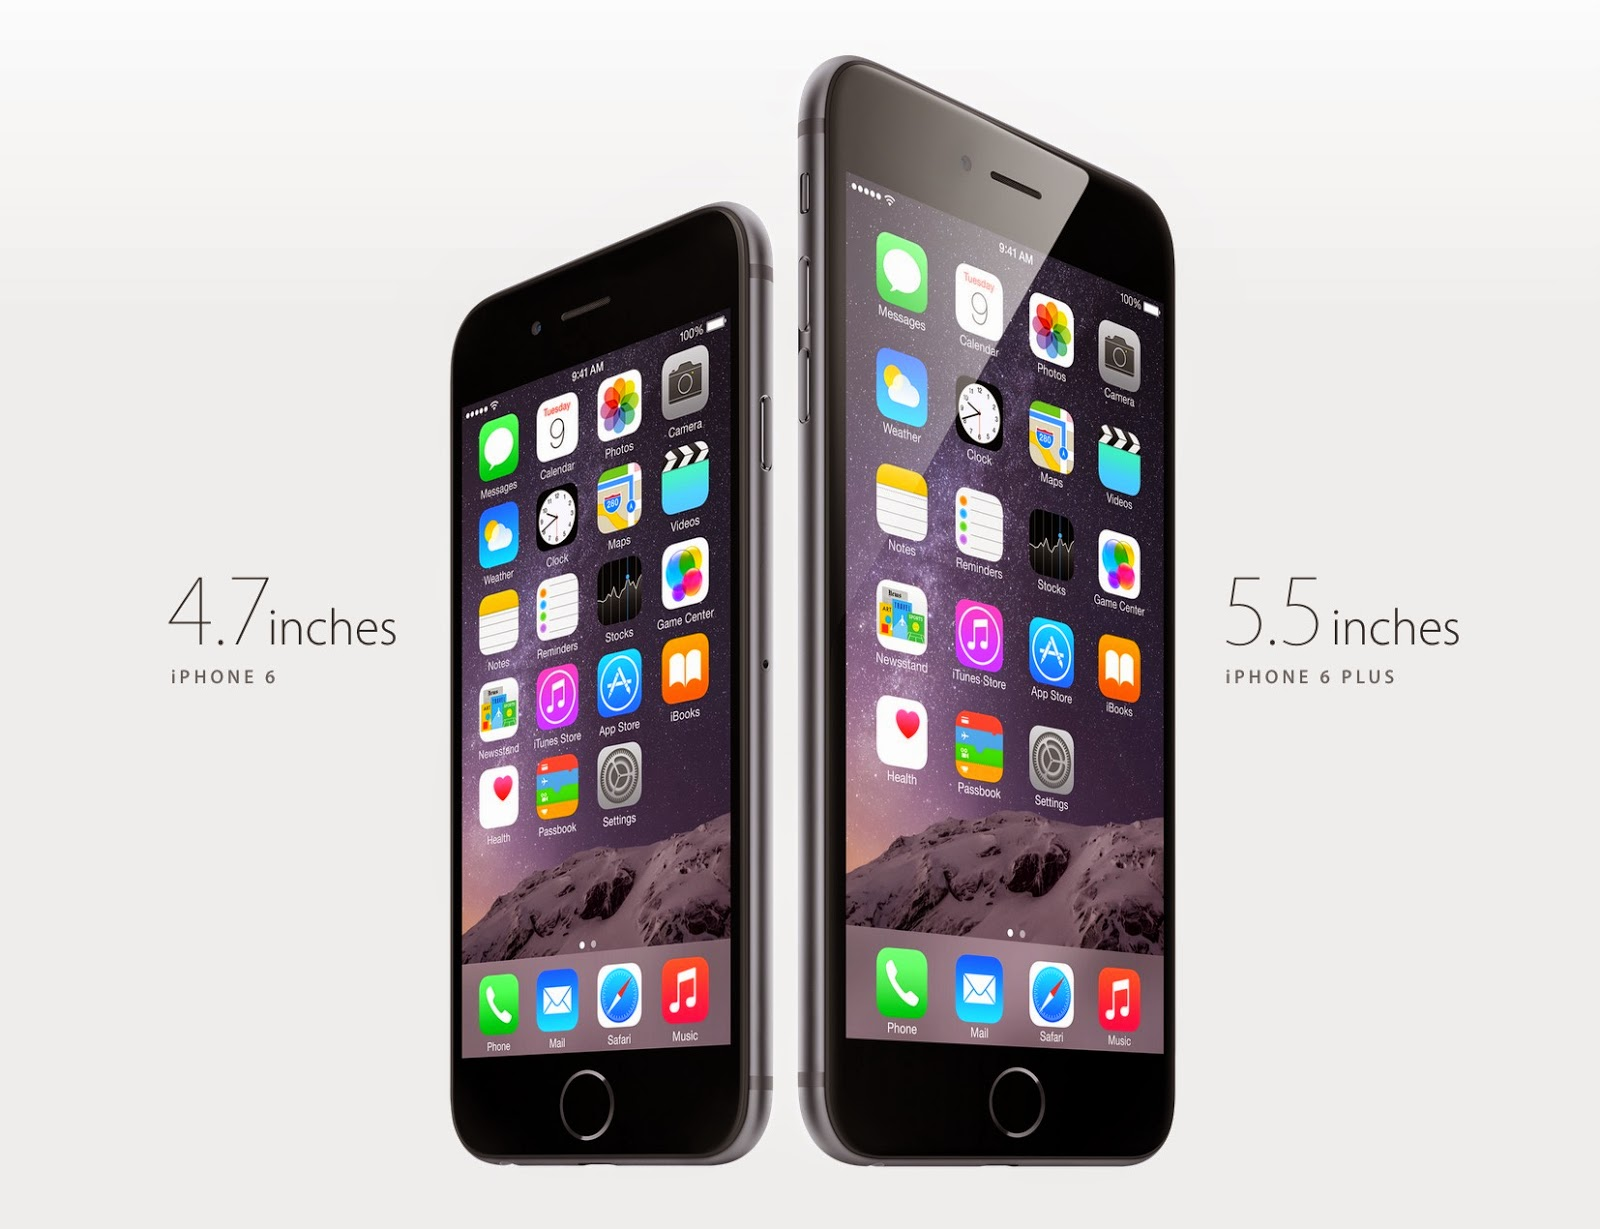 iPhone 6 or iPhone 6 Plus